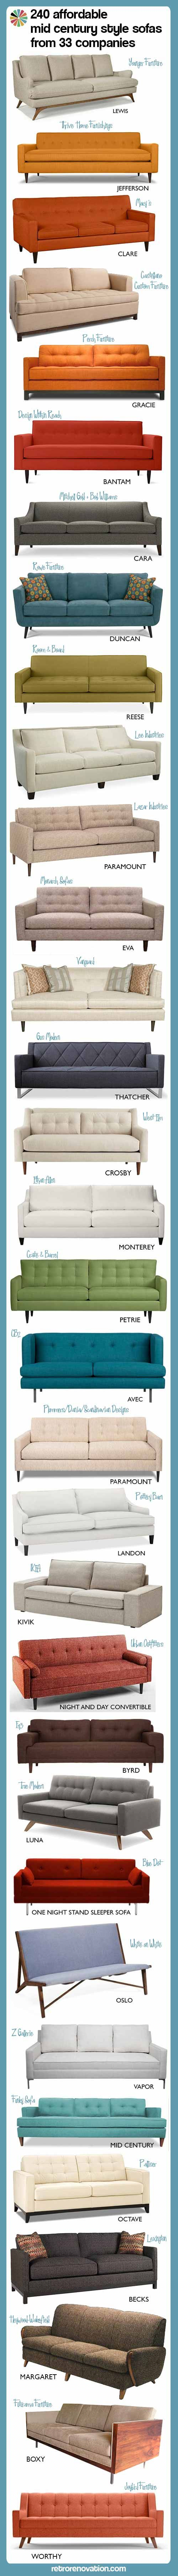 240 Affordable Mid Century Modern Style Sofas   From 33 Companies   Retro  Renovation · Mitte Des Jahrhunderts Moderne ...